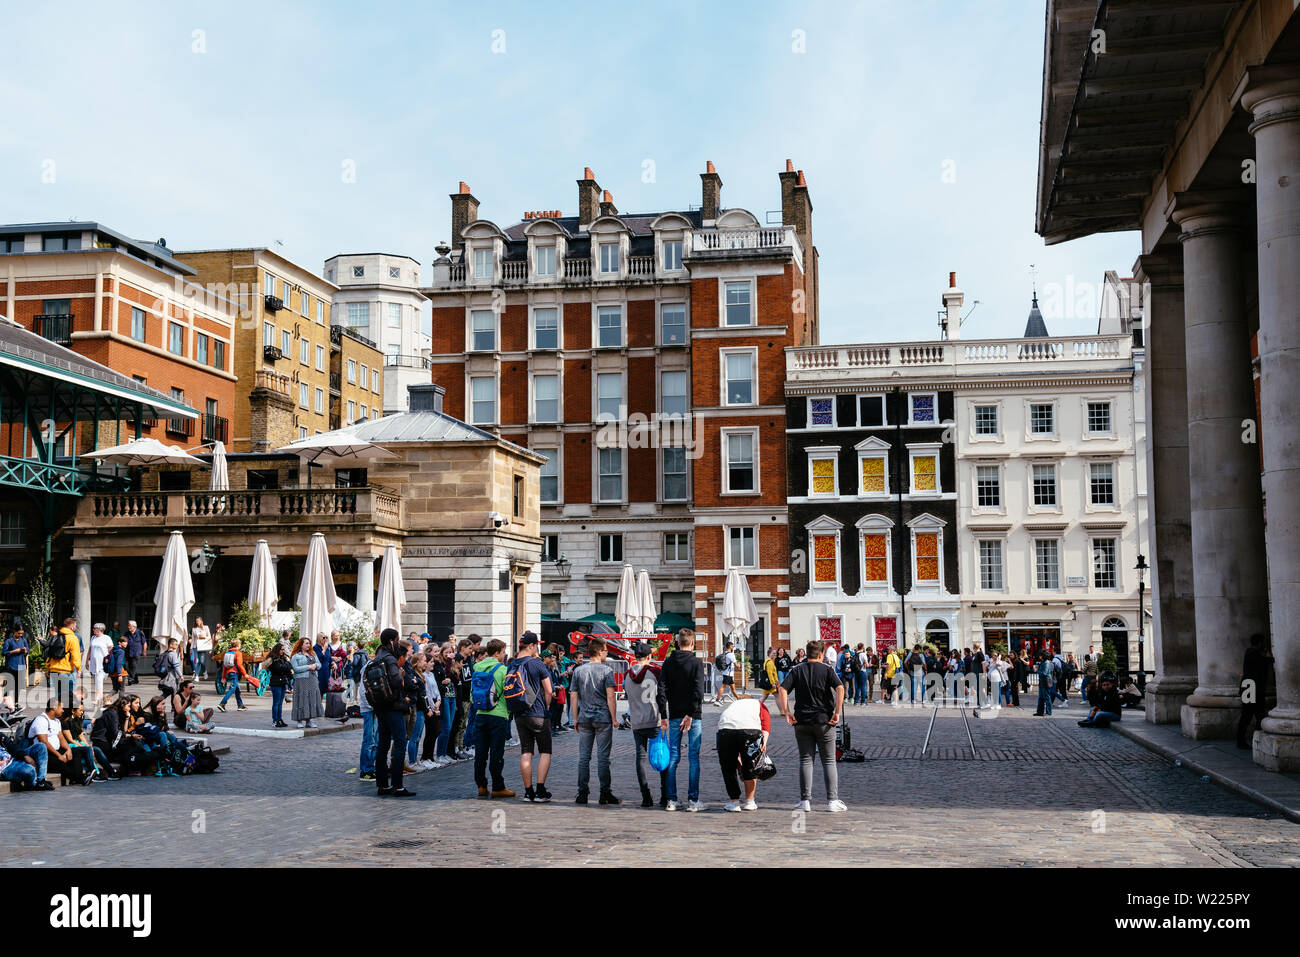 London, UK - May 15, 2019: Street performance in Covent Garden. It is one of the main attractions in London, it is known for its restaurants, the mark Stock Photo